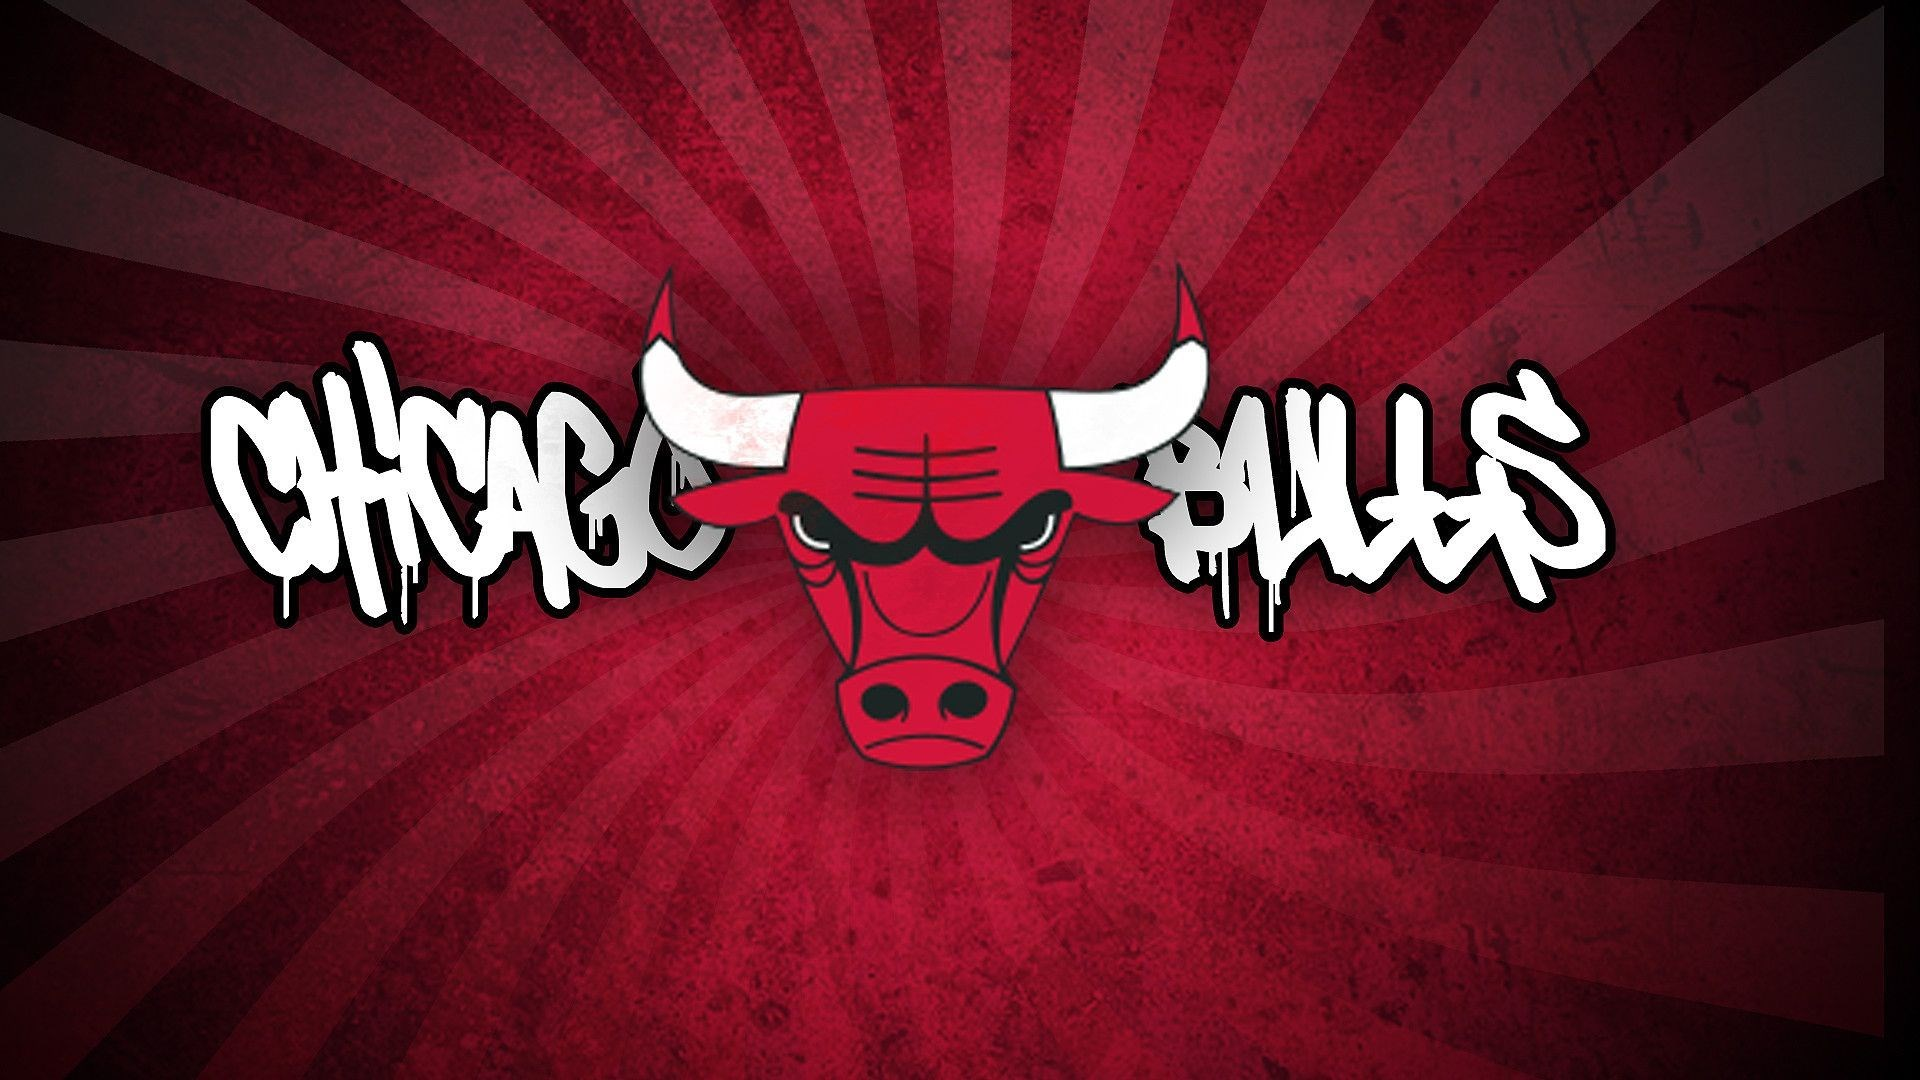 Backgrounds-In-High-Quality-chicago-bulls-Hill-Ross-1920-x-1080-wallpaper-wpc9202730